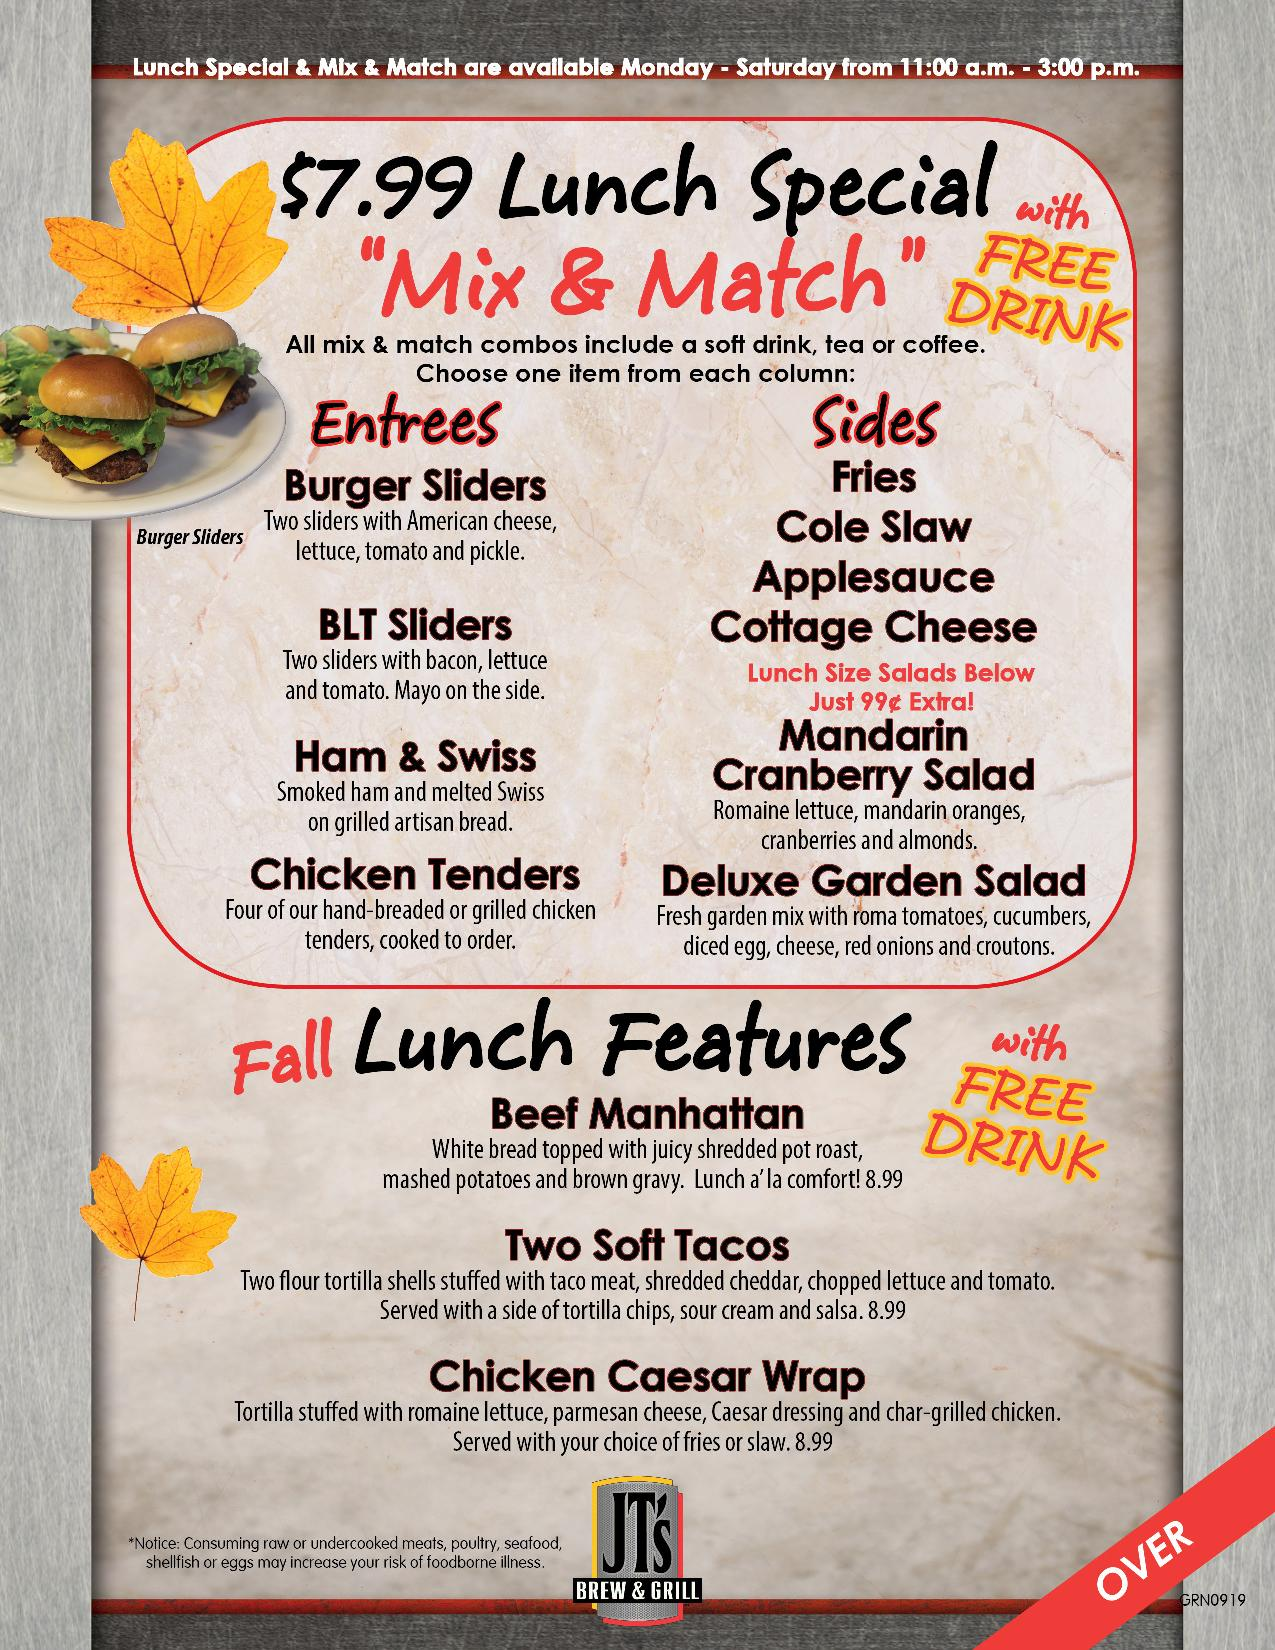 """Lunch special & mix & maych are available Monday – Saturday from 11:00am – 3:00pm. $7.99 lunch special """"mix and match"""" with free drink. All mix and match combos include a soft drink, tea or coffee. Choose one item from each Entrees and sides. Entrees. Burger Sliders, two sliders with American cheese, lettuce, tomato and pickle. BLT Sliders, two sliders with bacon, lettuce, and tomato, with mayo on the side. Ham and swiss, smoked ham and melted swiss on grilled artisan bread. Chicken tenders, four of our hand-breaded or grilled chicken tenders cooked to order. Sides. Fries. Cole slaw. Applesauce. Cottage cheese. mandarin cranberry salad, romaine lettuce, mandarin oranges, cranberries and almonds. Deluxe garden salad, fresh garden mix with roma tomatoes, cucumbers, diced egg, cheese, red onions and croutons. Lunch size salads just $0.99 extra.  Fall Lunch features with free drink. Beef manhattan, white bread topped with juicy shredded pot roast, mashed potatoes and brown gravy - $8.99. Two soft shell tacos, two flour tortilla shelled stuffed with taco meat, shredded cheddar, chopped lettuce and tomato, served with a side of tortilla chips, sour cream, and salsa - $8.99. Chicken Caesar wrap, tortilla stuffed with romaine lettuce, parmesan cheese, Caesar dressing and char-grilled chicken served with your choice of fries or slaw - $8.99. *Notice: Consuming raw or undercooked meats, poultry, seafood, shellfish or eggs may increase your risk of foodborne illness."""